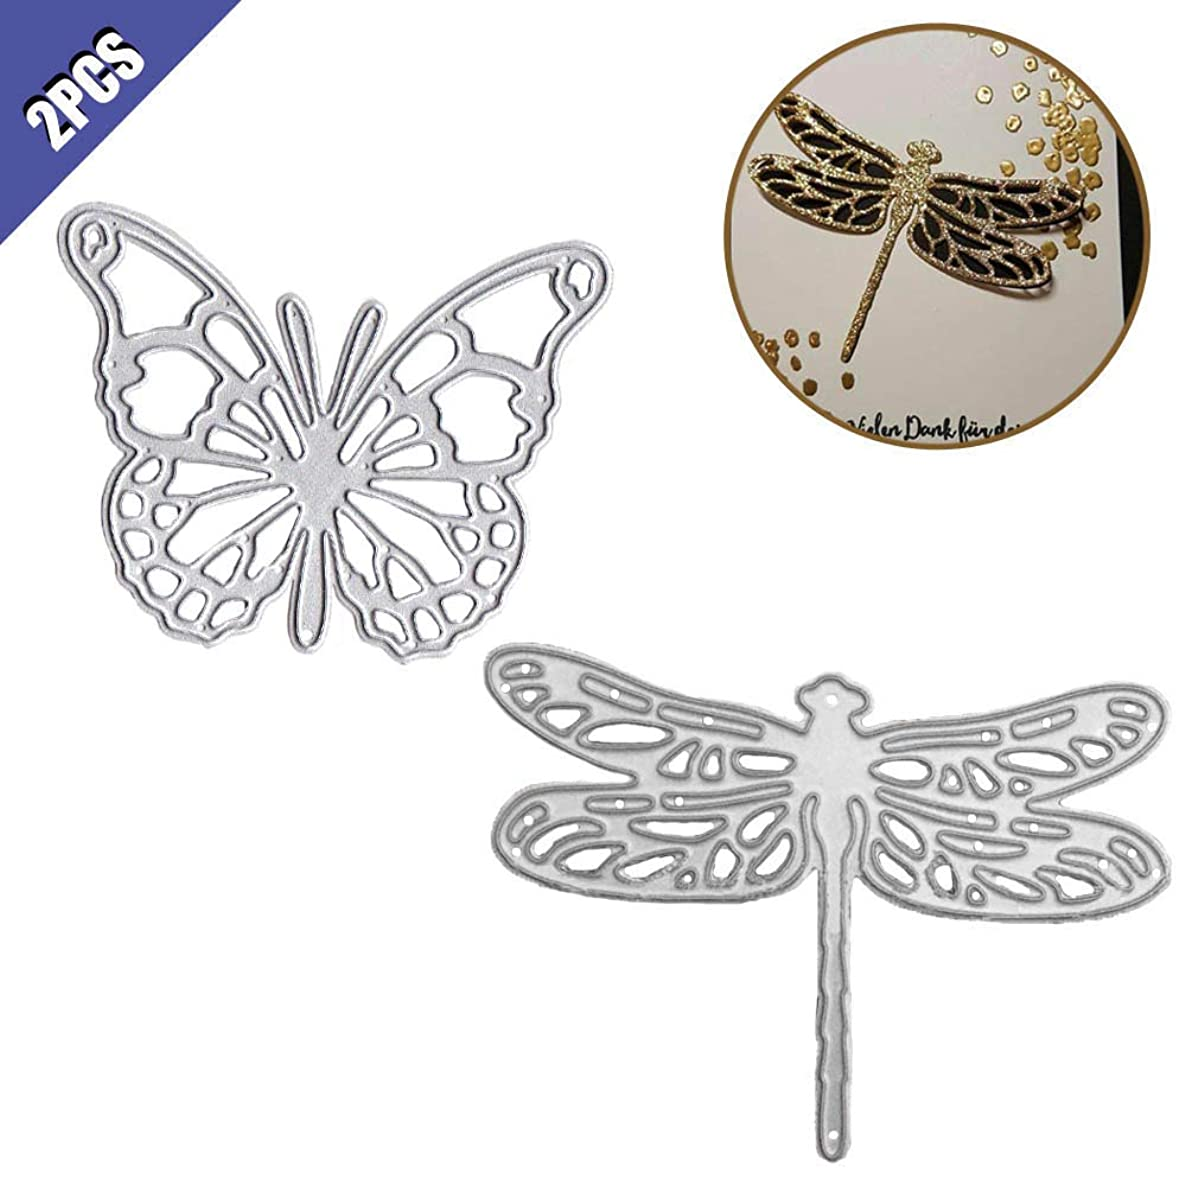 Comidox Butterfly Dragonfly Cutting Dies Stencils DIY Scrapbooking Decor Embossing Album Post Card Making Paper Craft 2Pcs